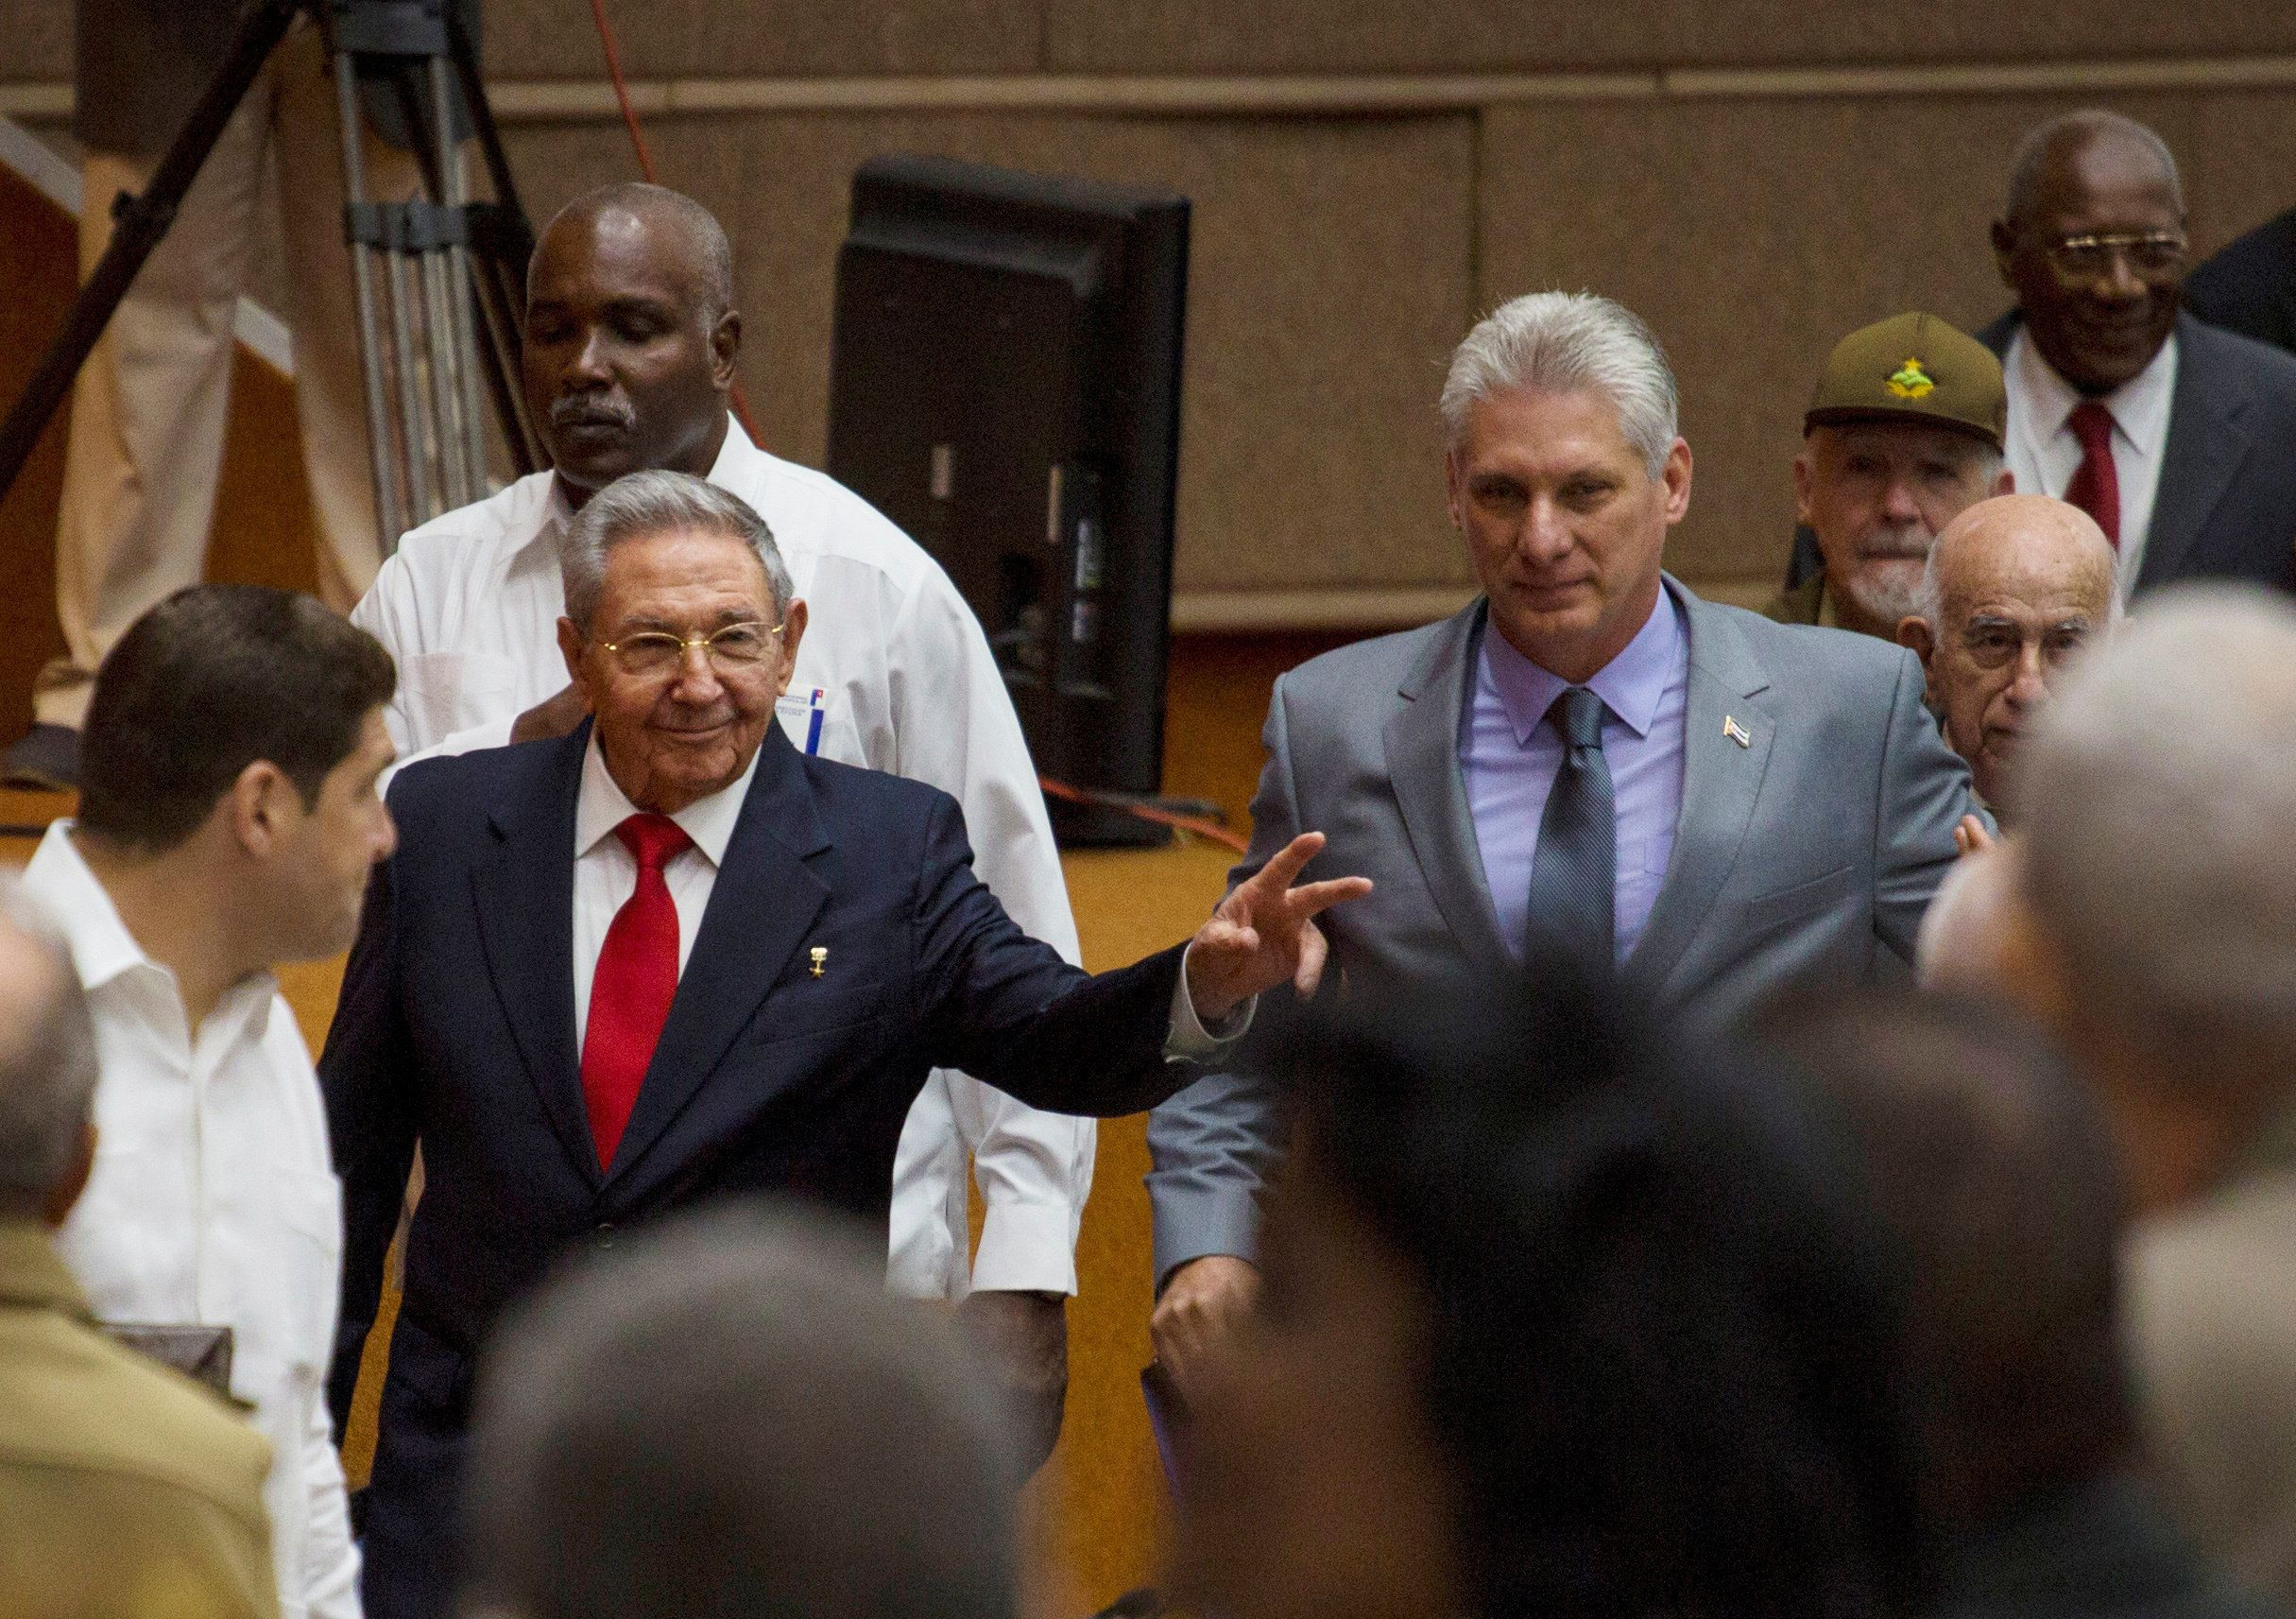 Miguel Diaz-Canel Elected President Of Cuba, Ending 60 Years Of Castro Rule